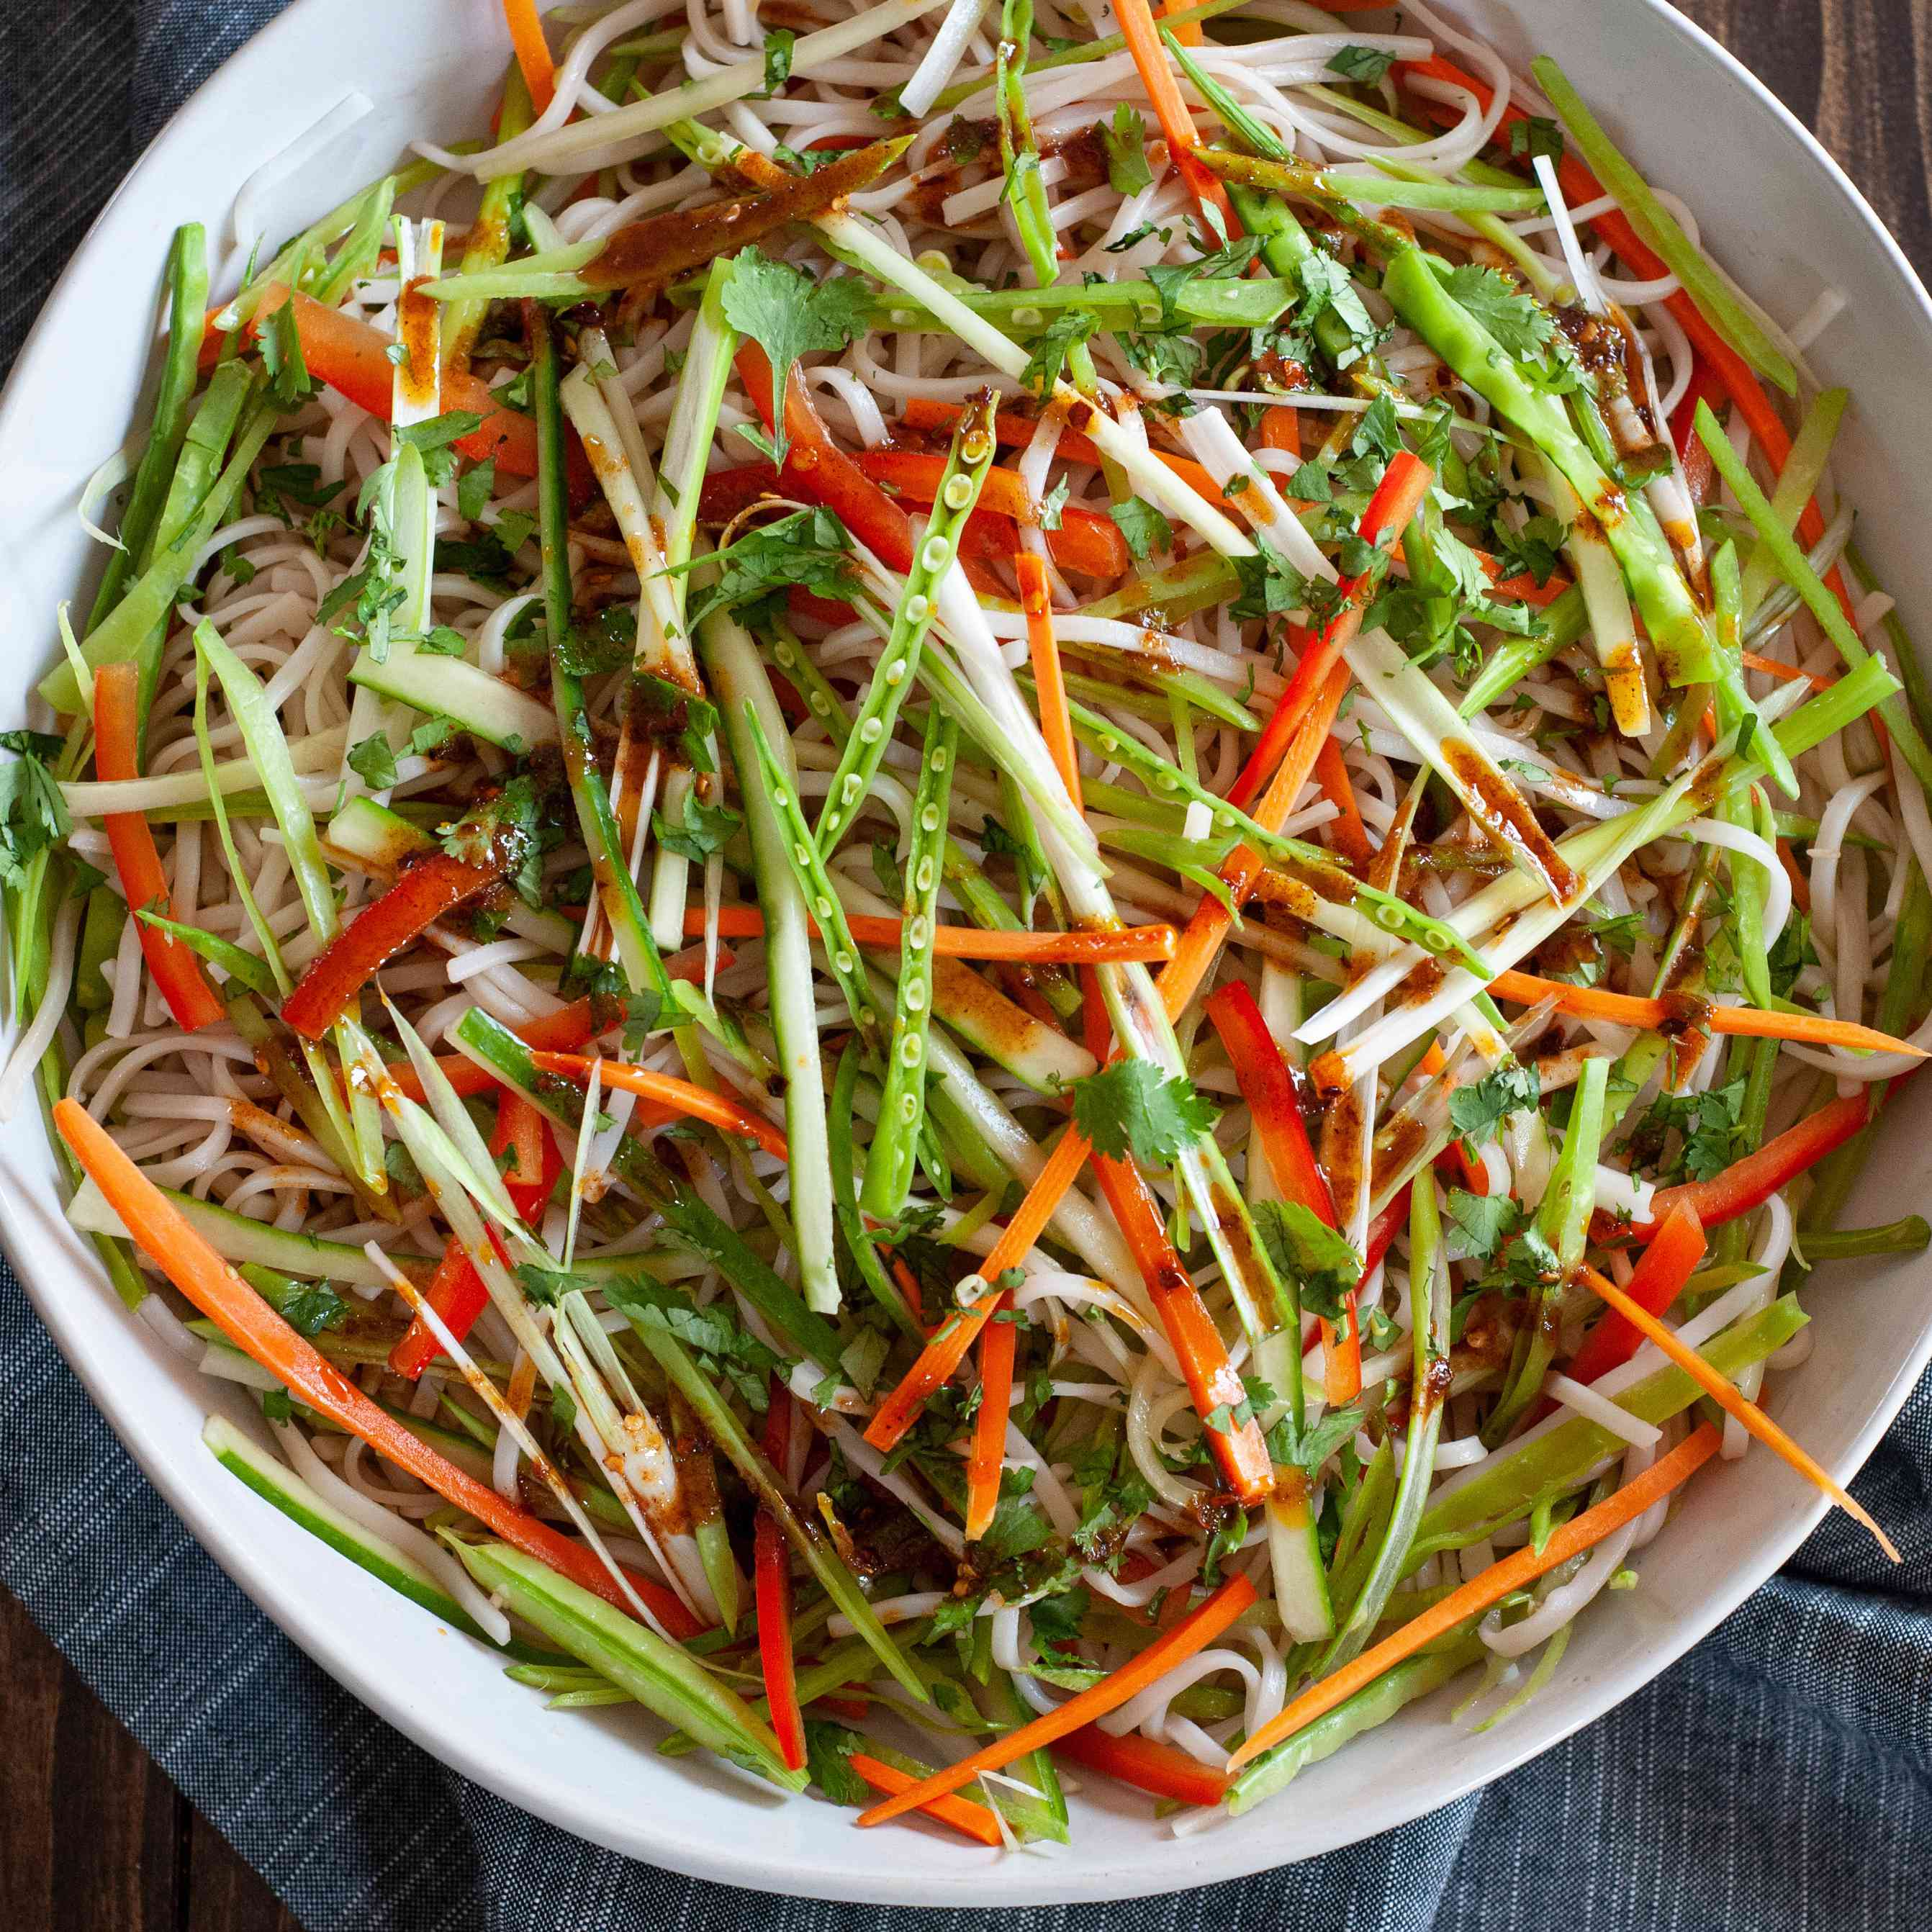 Vegetable rice noodle salad in a serving bowl with a linen underneath.